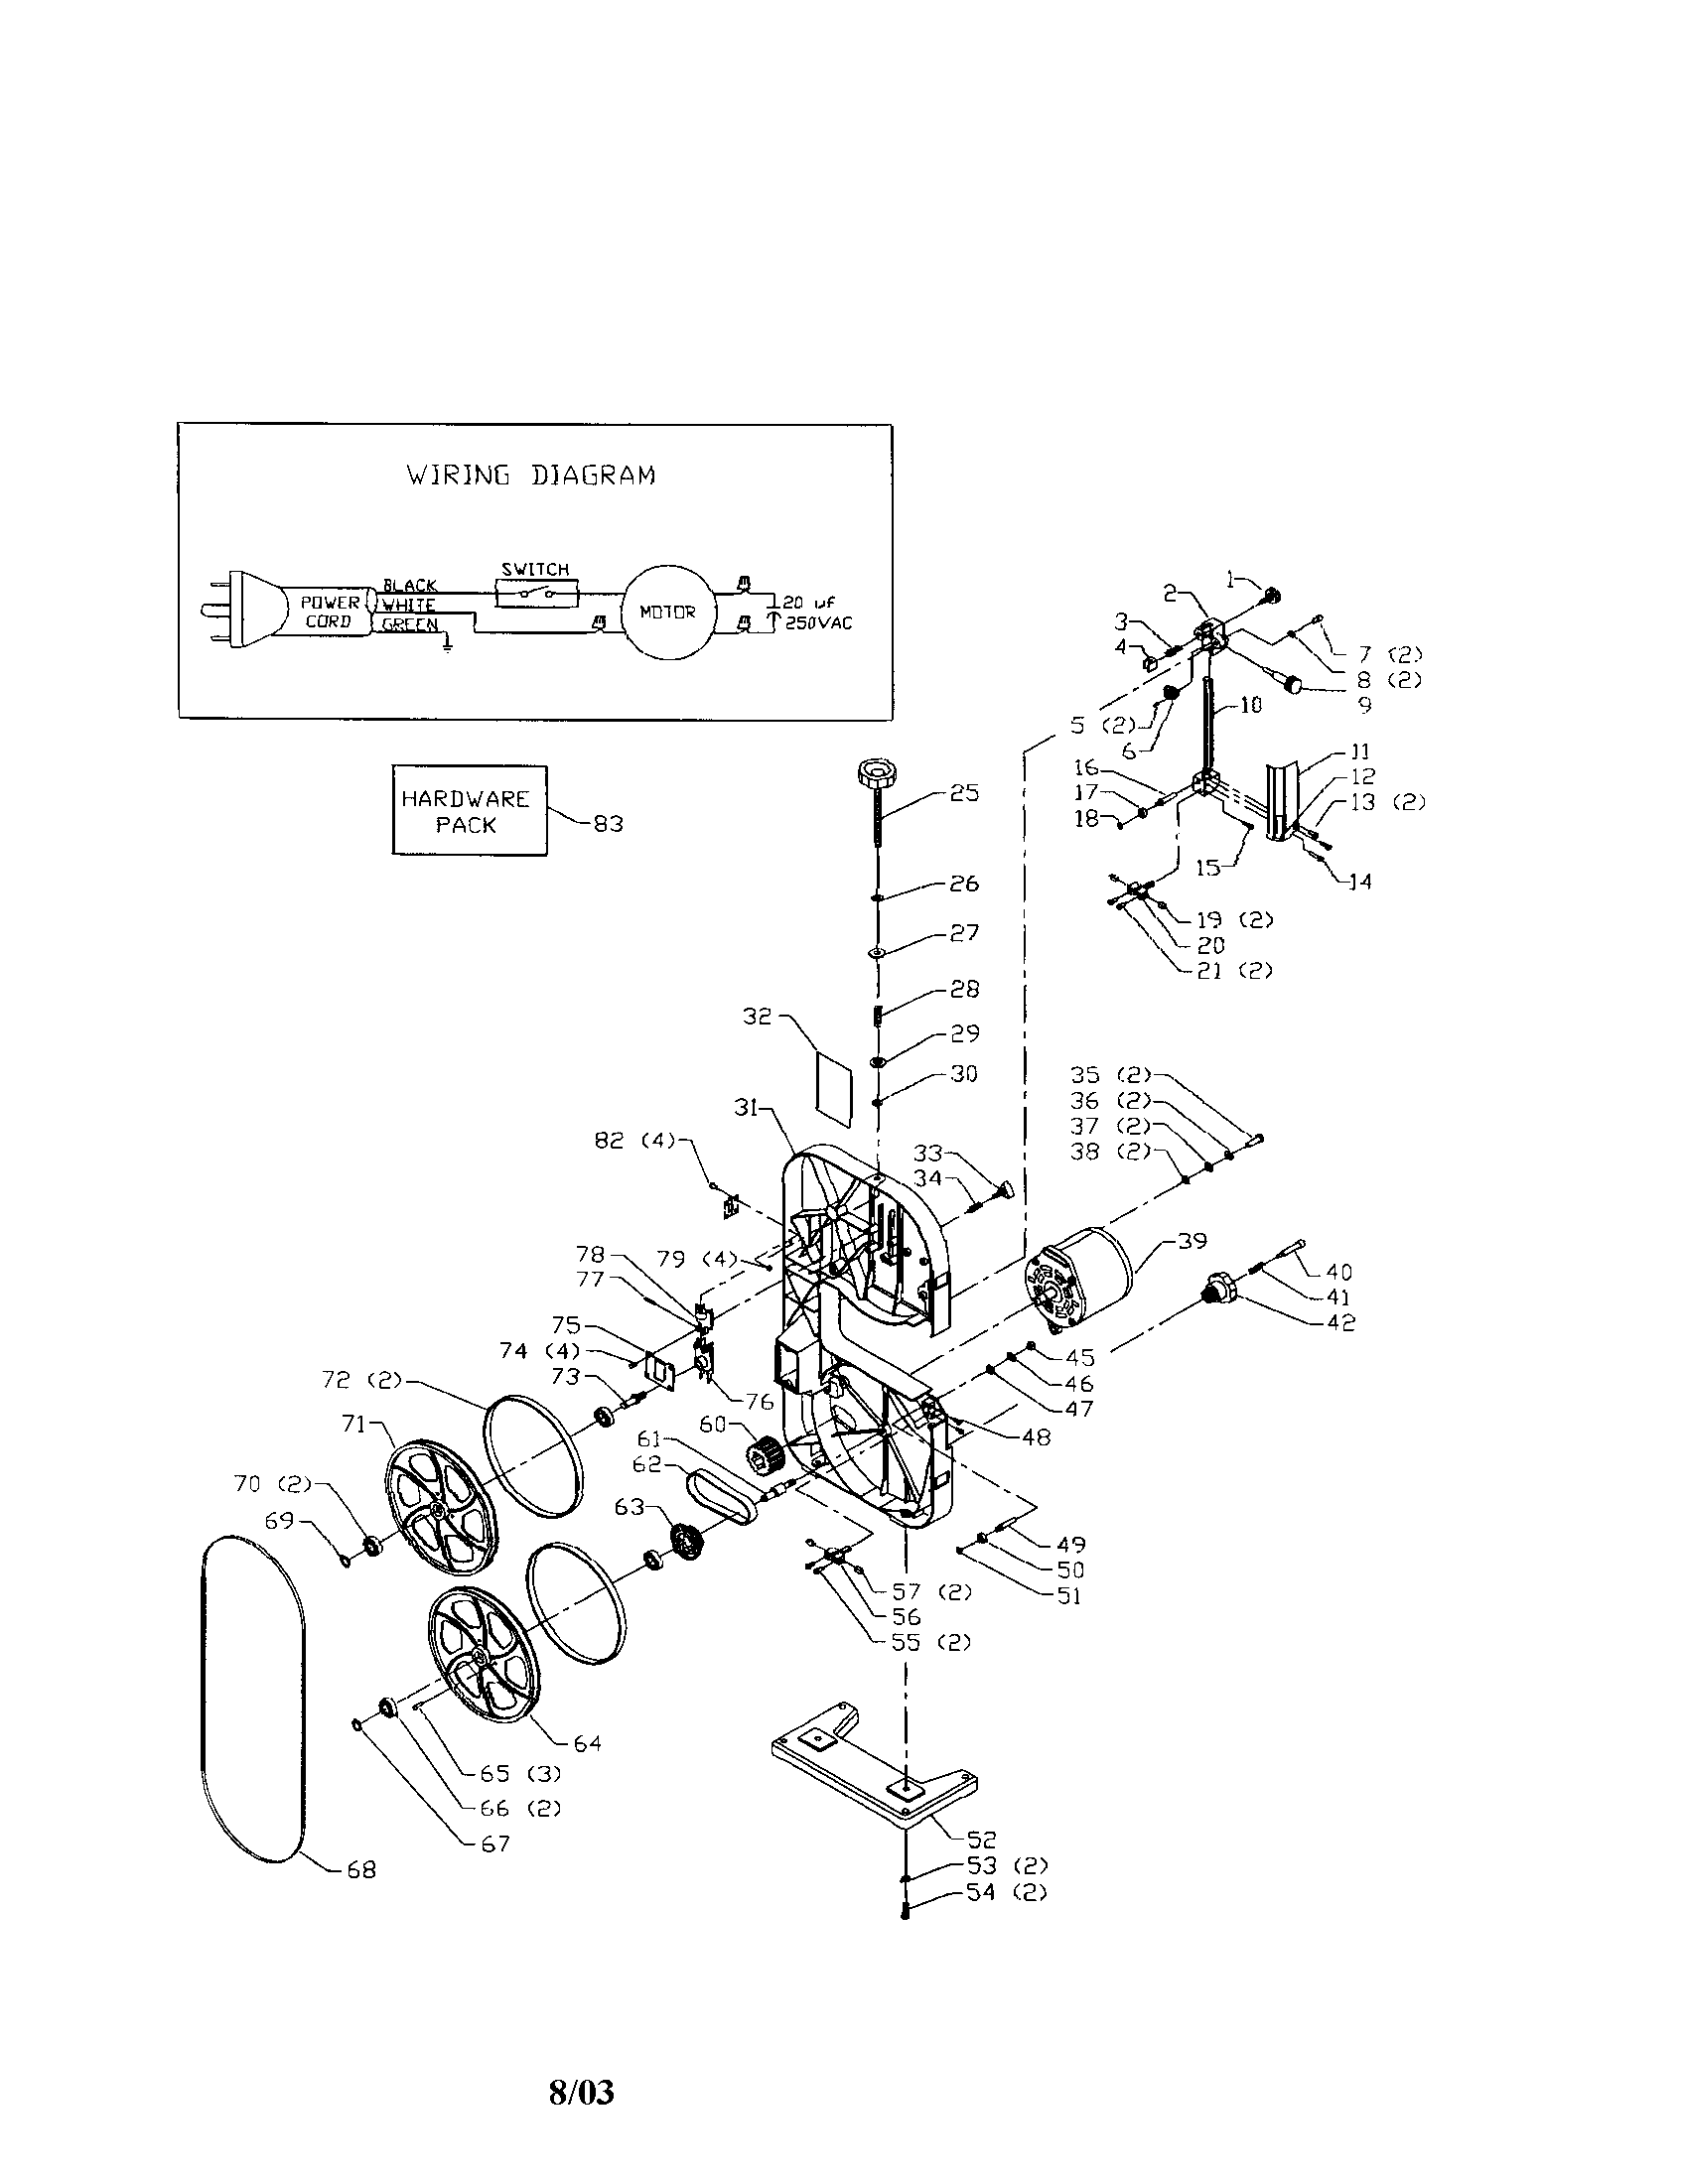 wiring diagram for a band saw